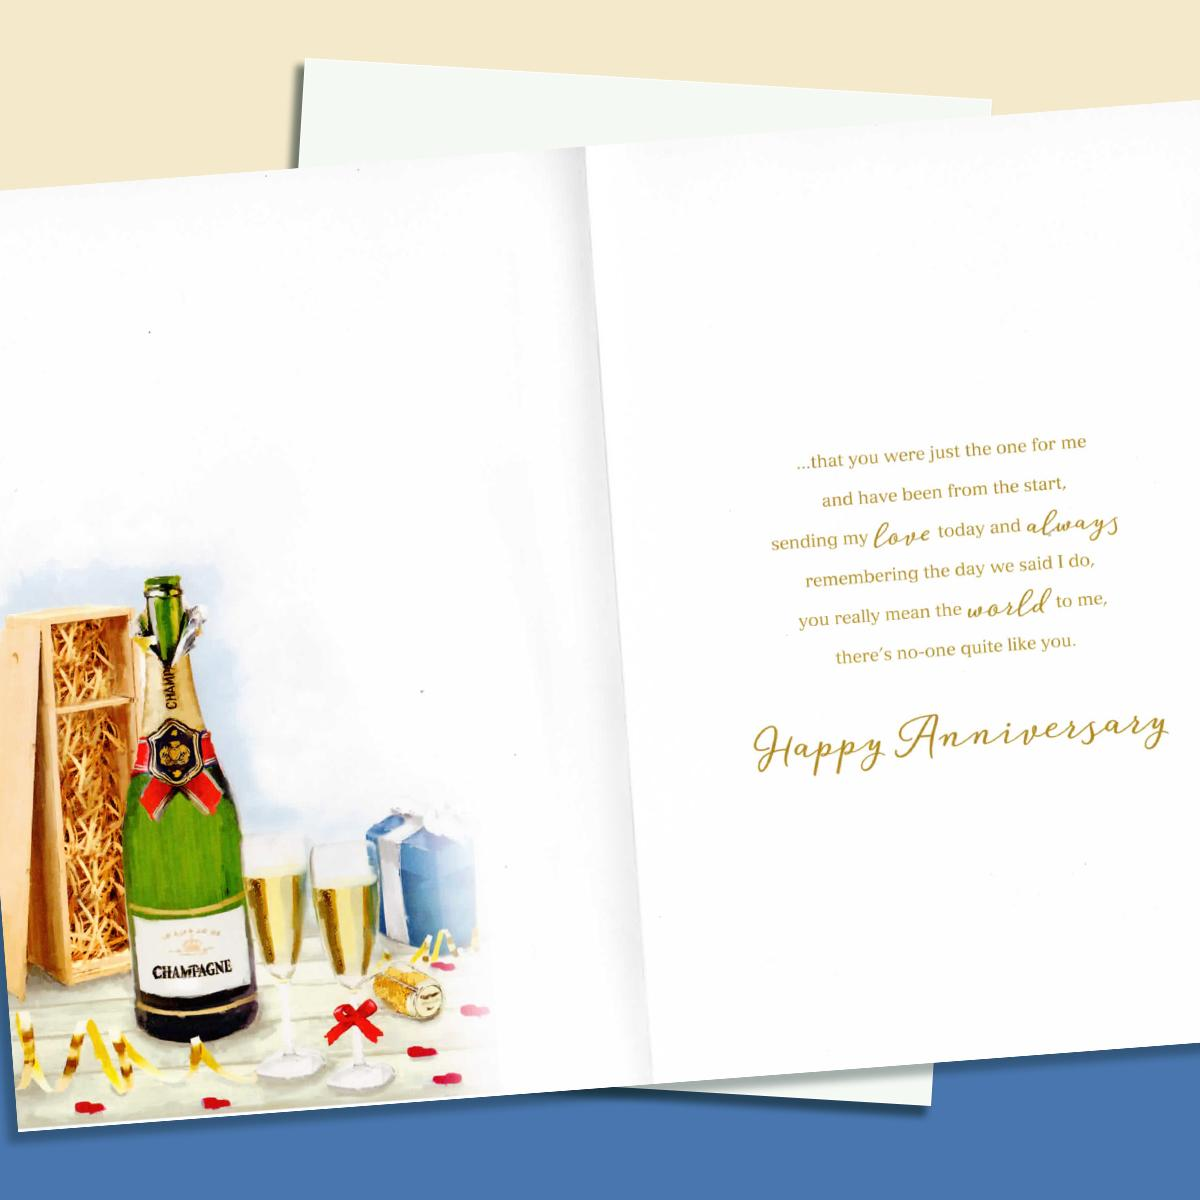 Image Of Inside Of Husband Anniversary Card Showing Layout And Printed Text